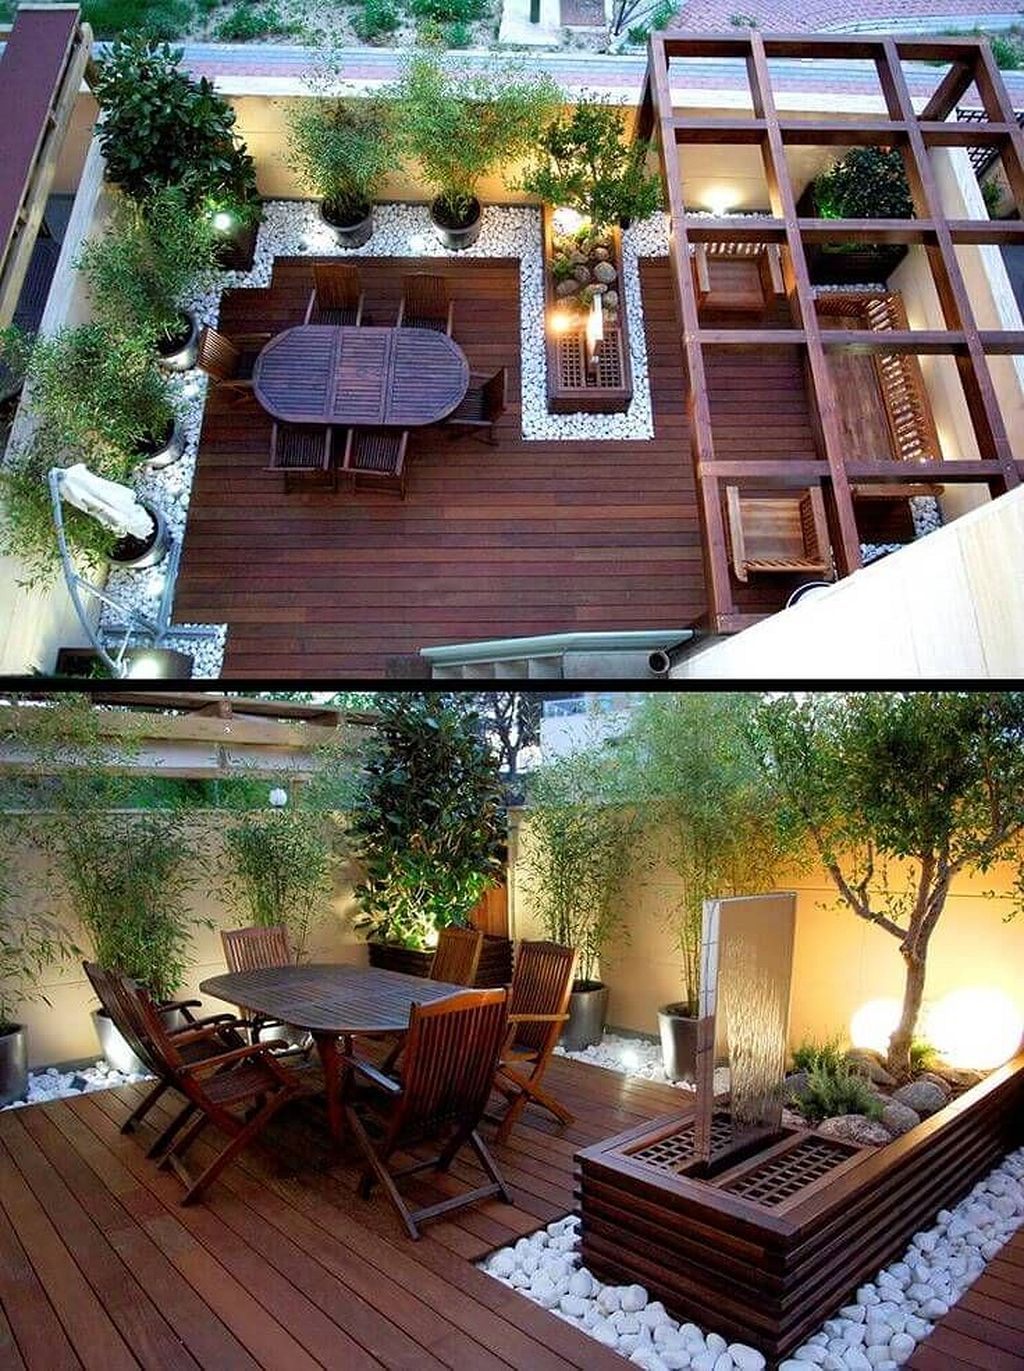 Marvelous Awesome 125 Small Backyard Landscaping Ideas  Https://architecturemagz.com/125 . Landschaftsbau IdeenKleine HinterhöfeSmall  Backyard Landscaping Great Ideas